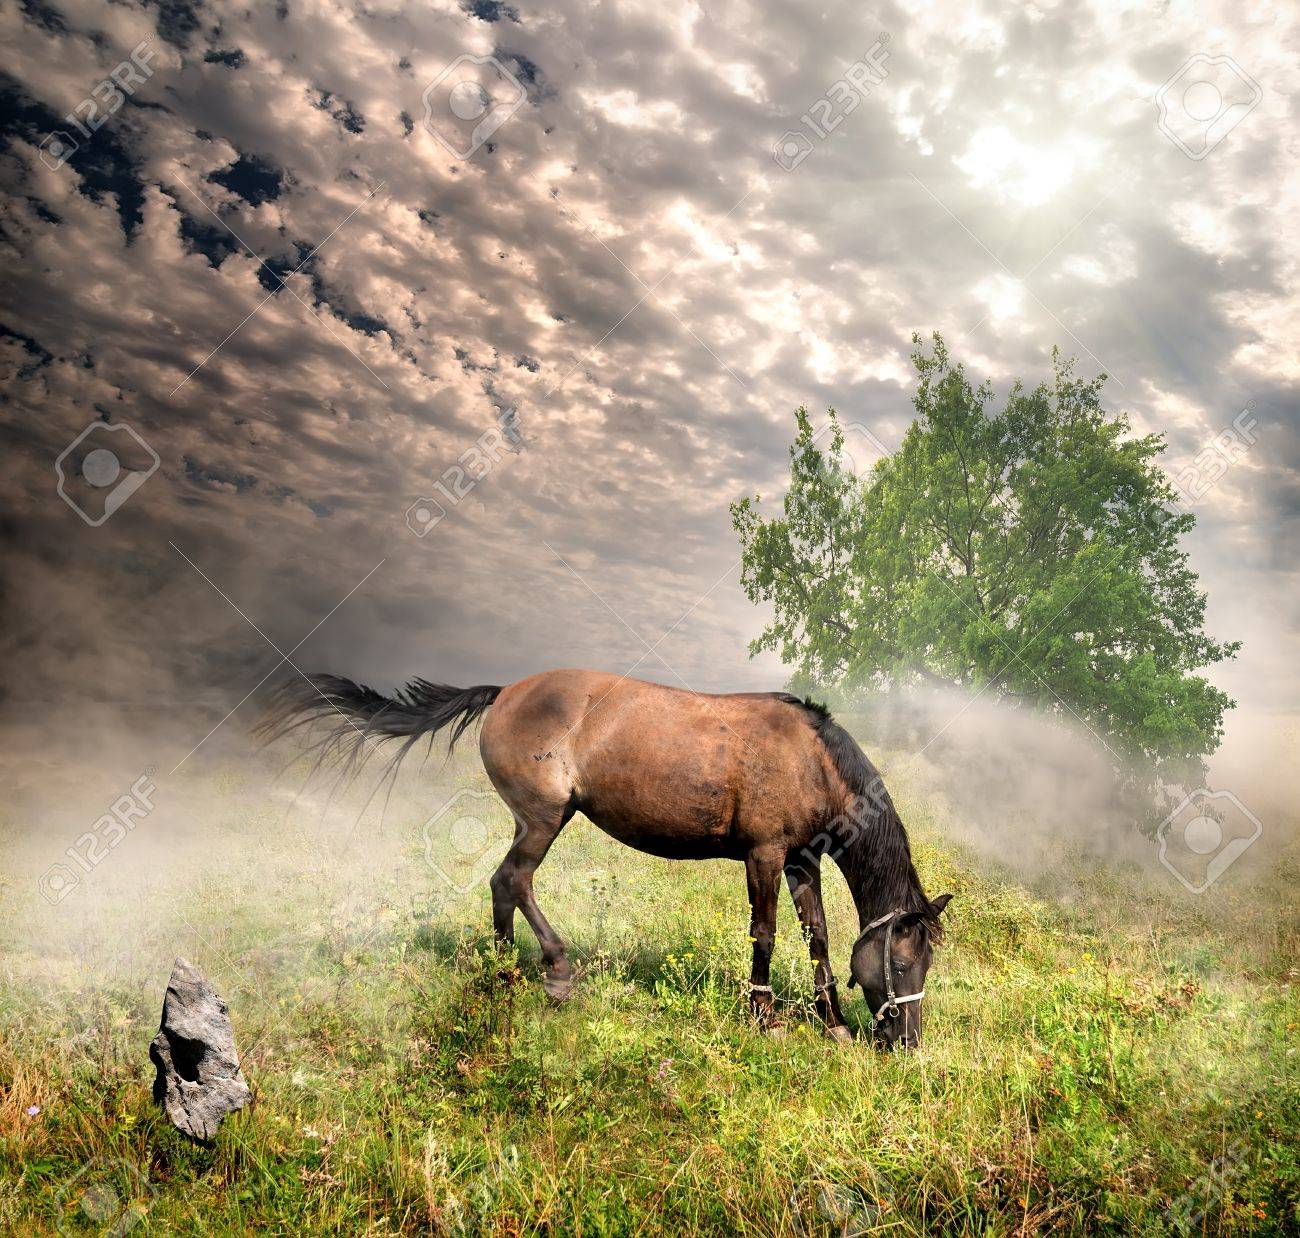 Horse in a meadow on a cloudy day Stock Photo - 21774907